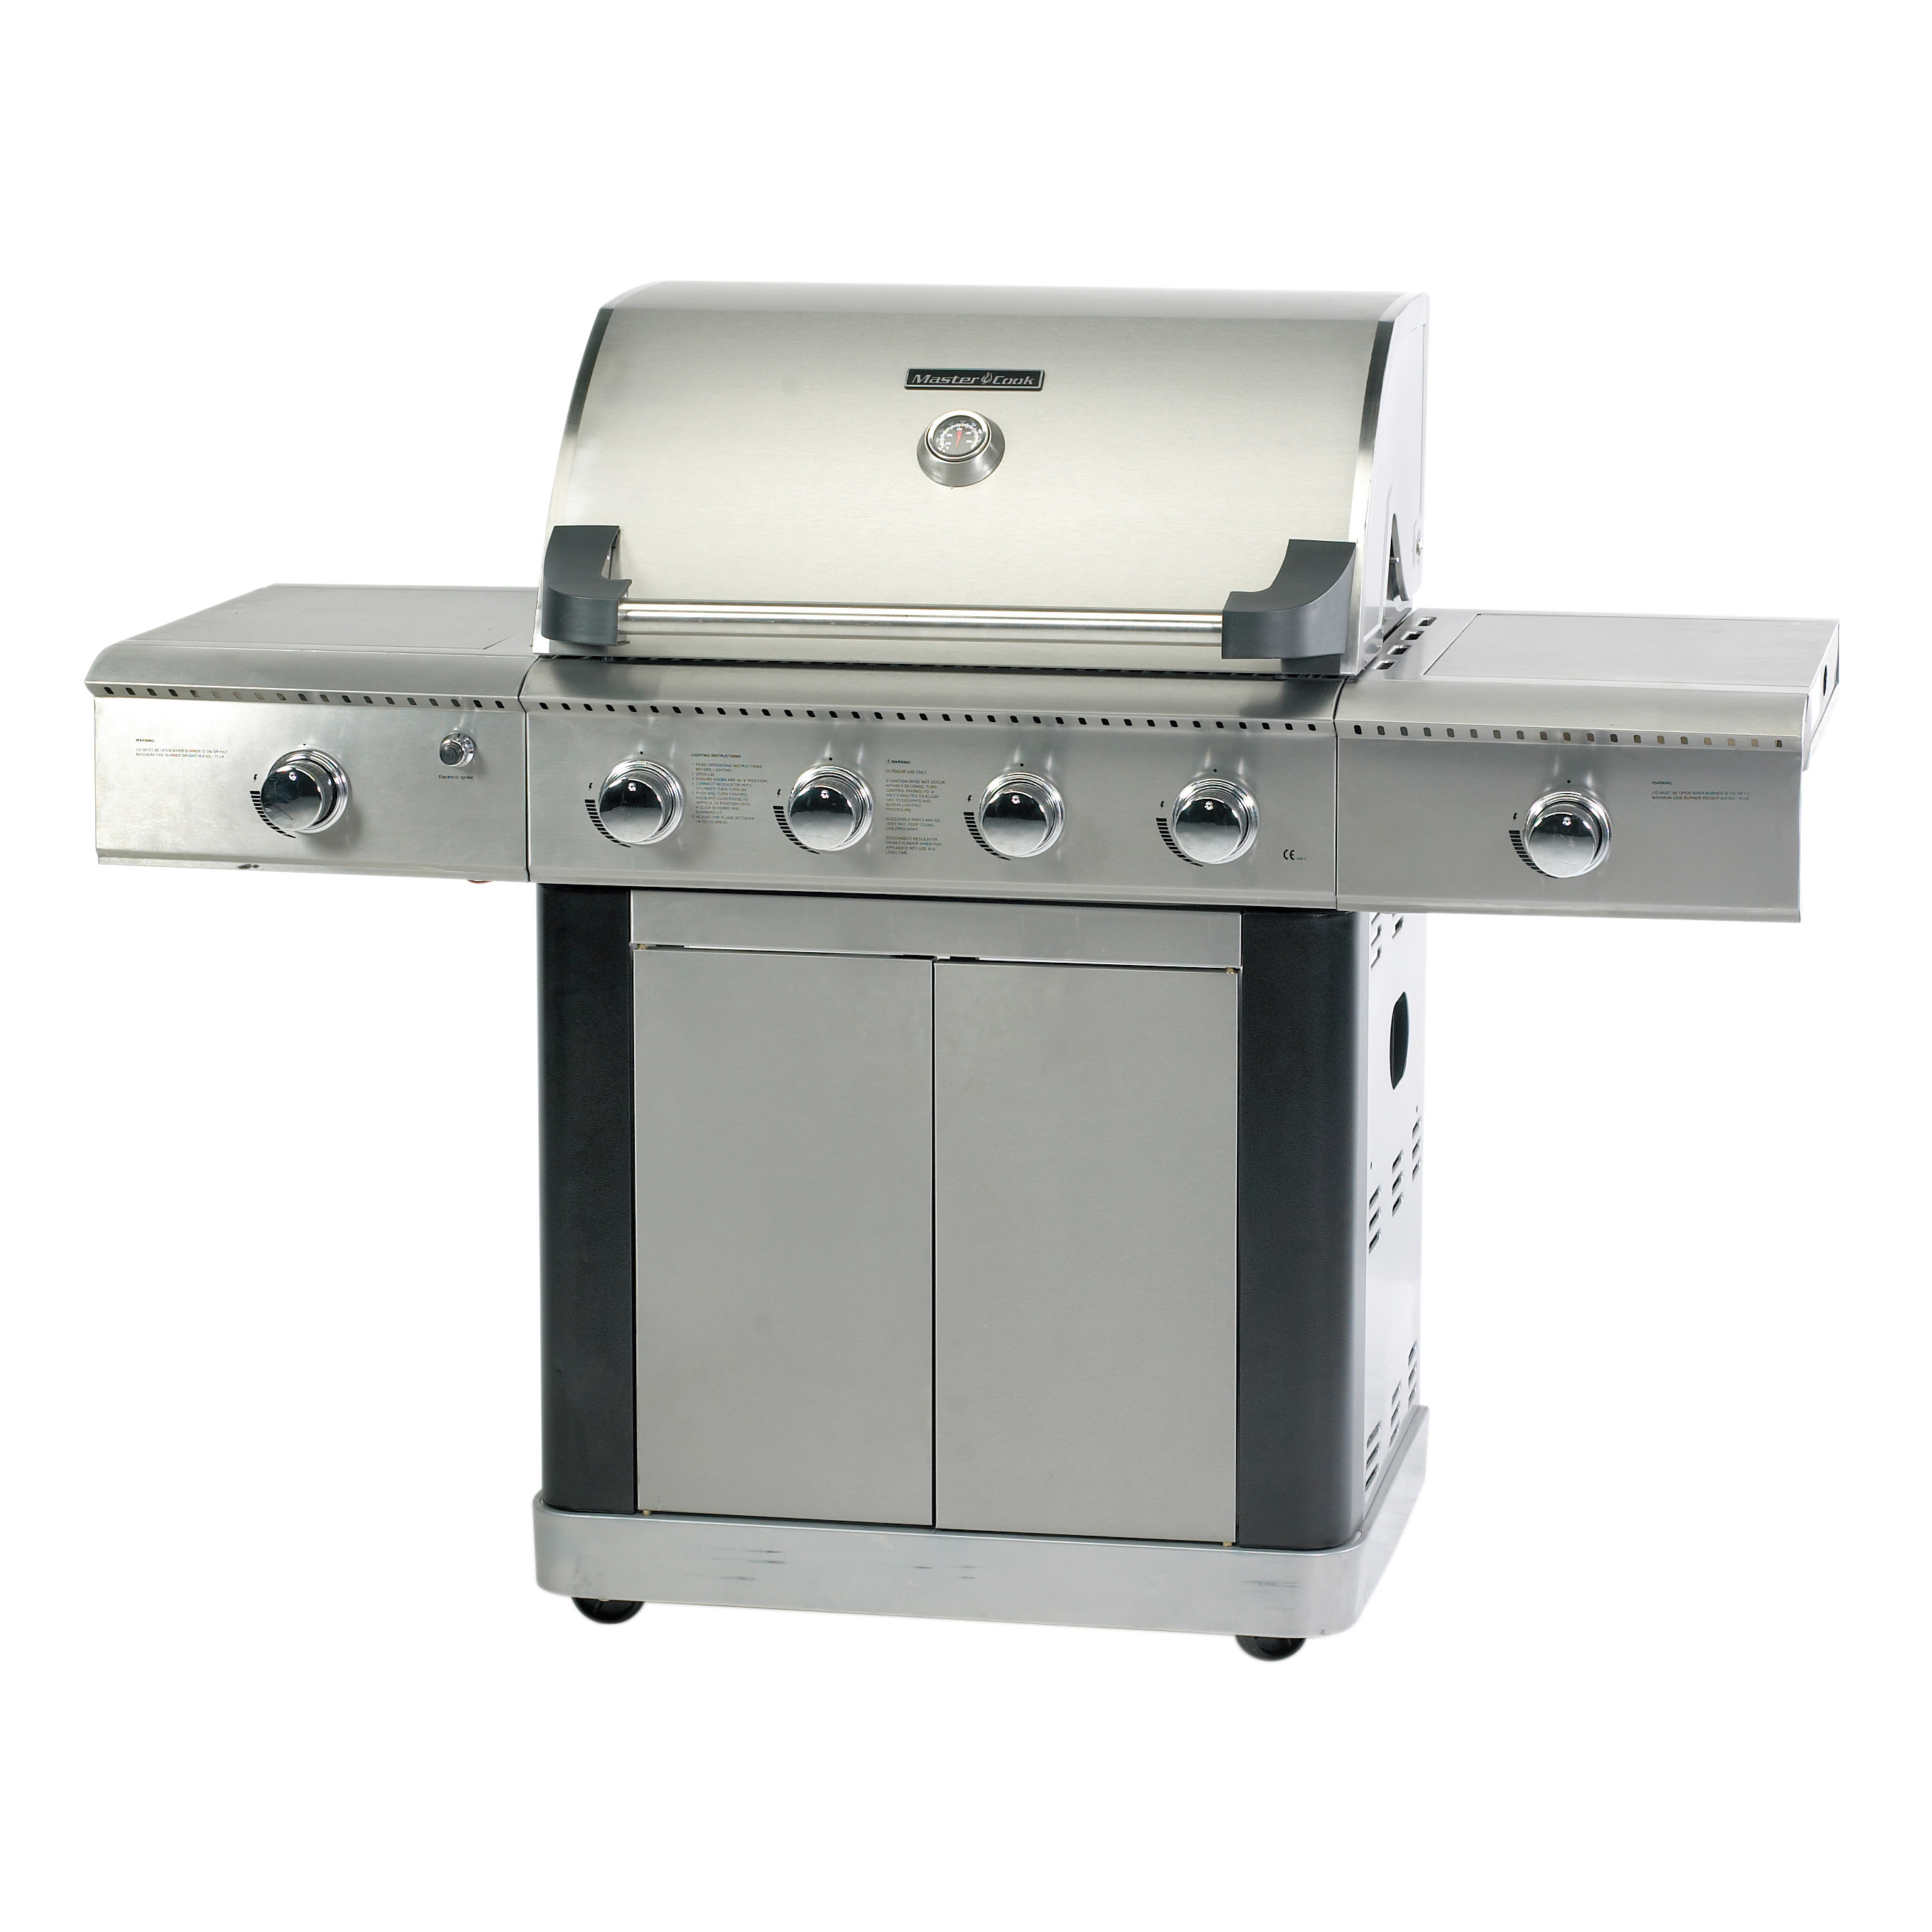 https://www.firstfurniture.co.uk/pub/media/catalog/product/R/o/Royal-Craft-Platinum-600-Deluxe-Gas-Barbecue-with-Side-Burner-and-Searing-Burner.jpg